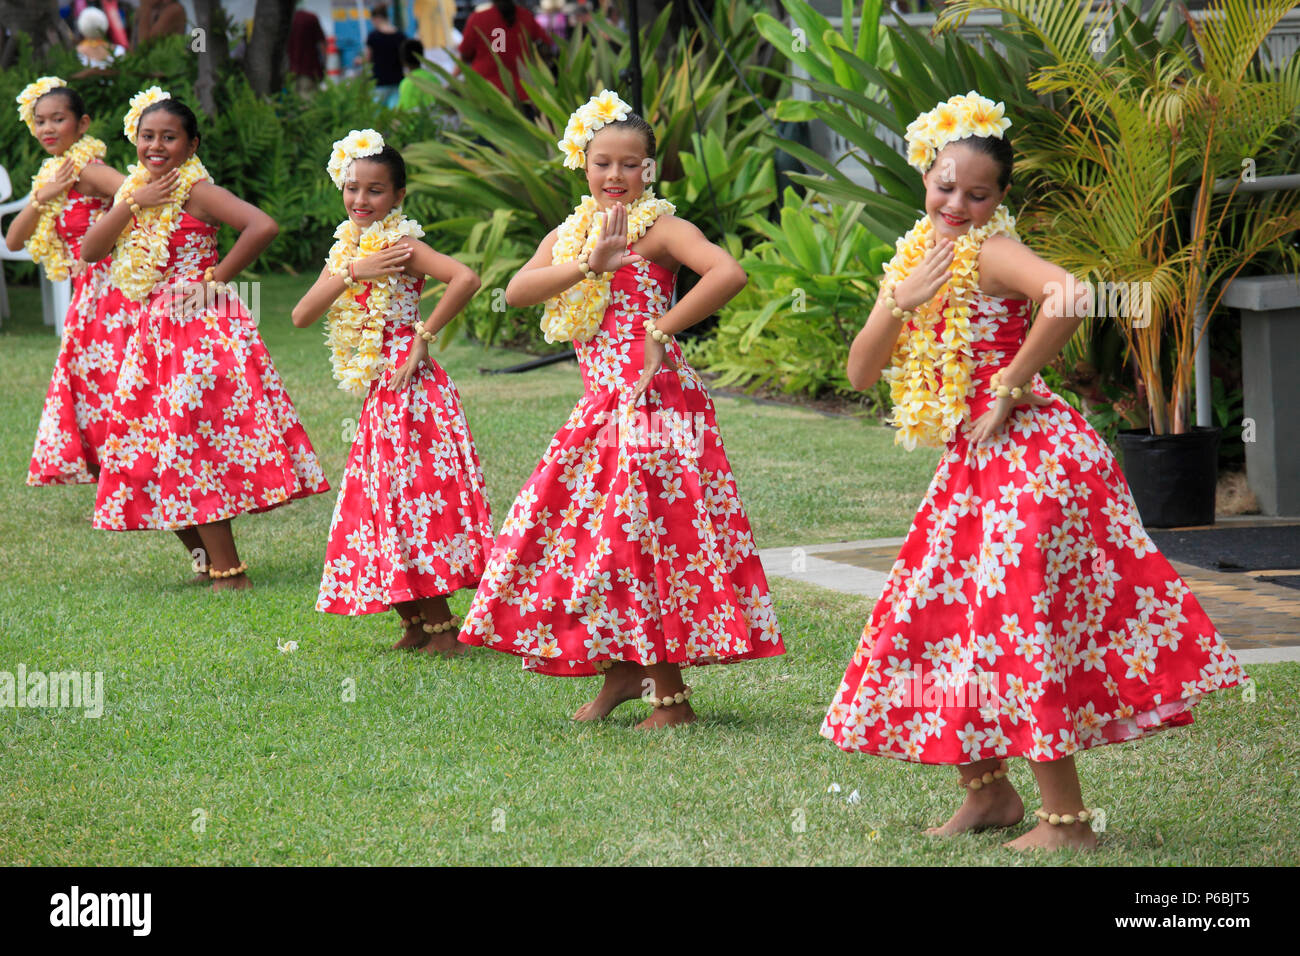 Hawaii, Big Island, Kailua-Kona, hula show, dancers, - Stock Image